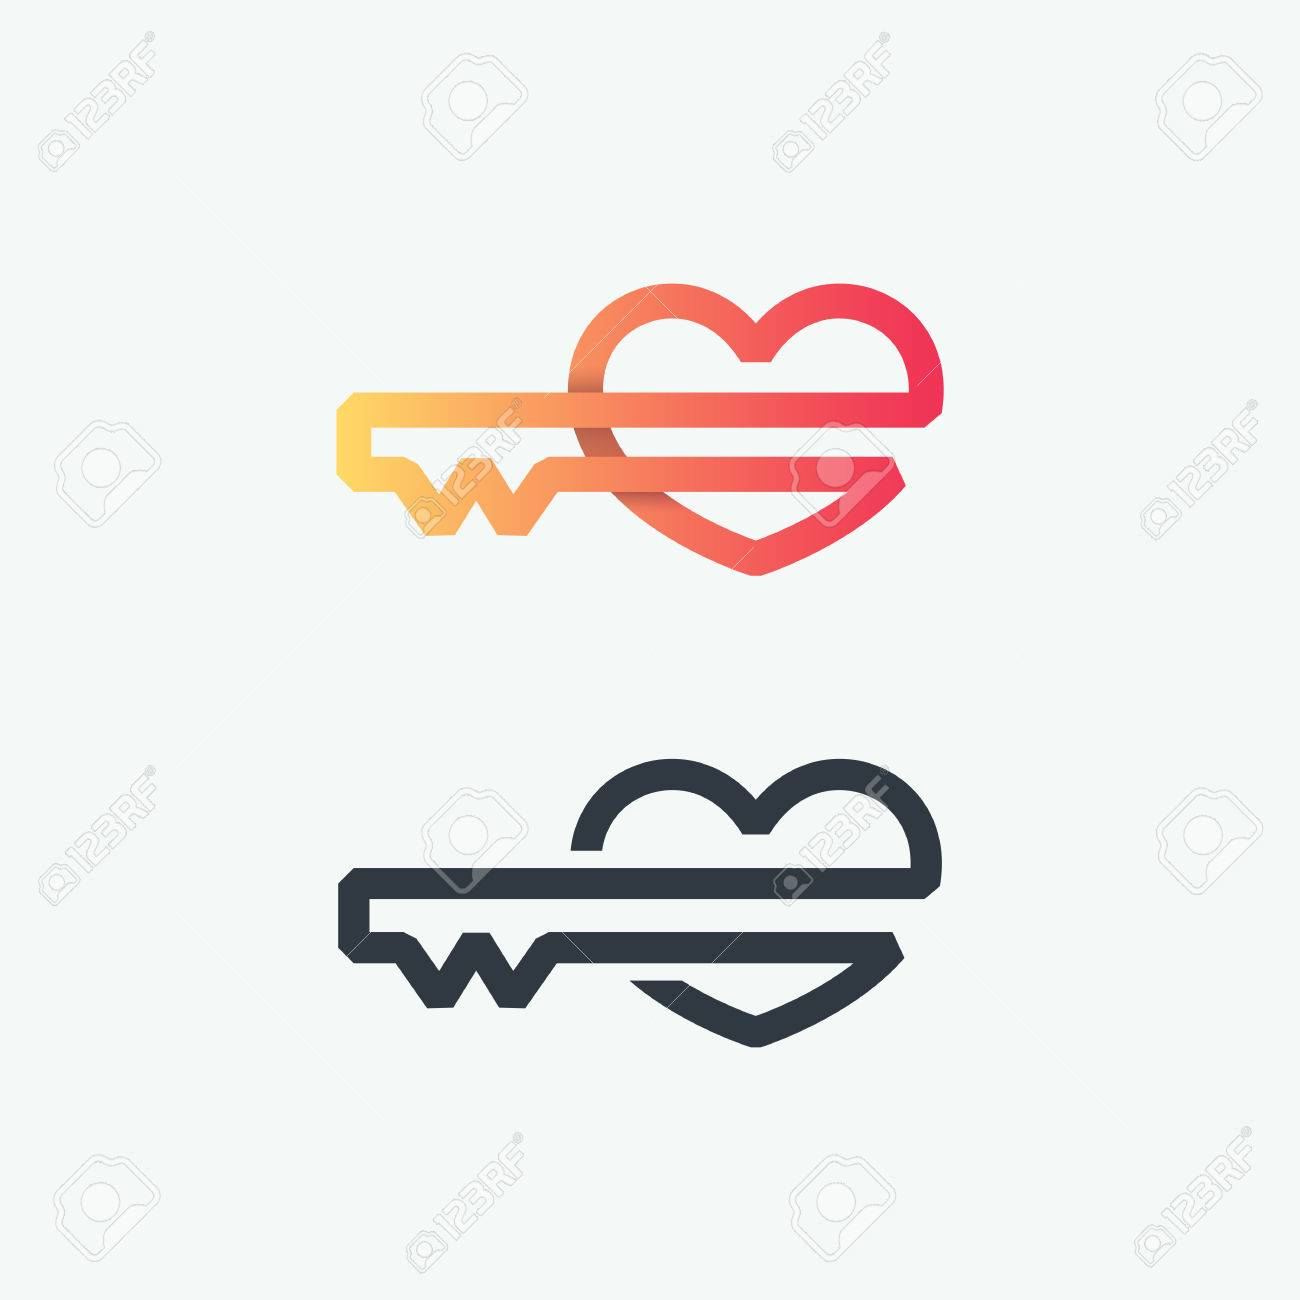 Thick Line Logo Vector Symbol Of Heart Key Line Graphical Gradient